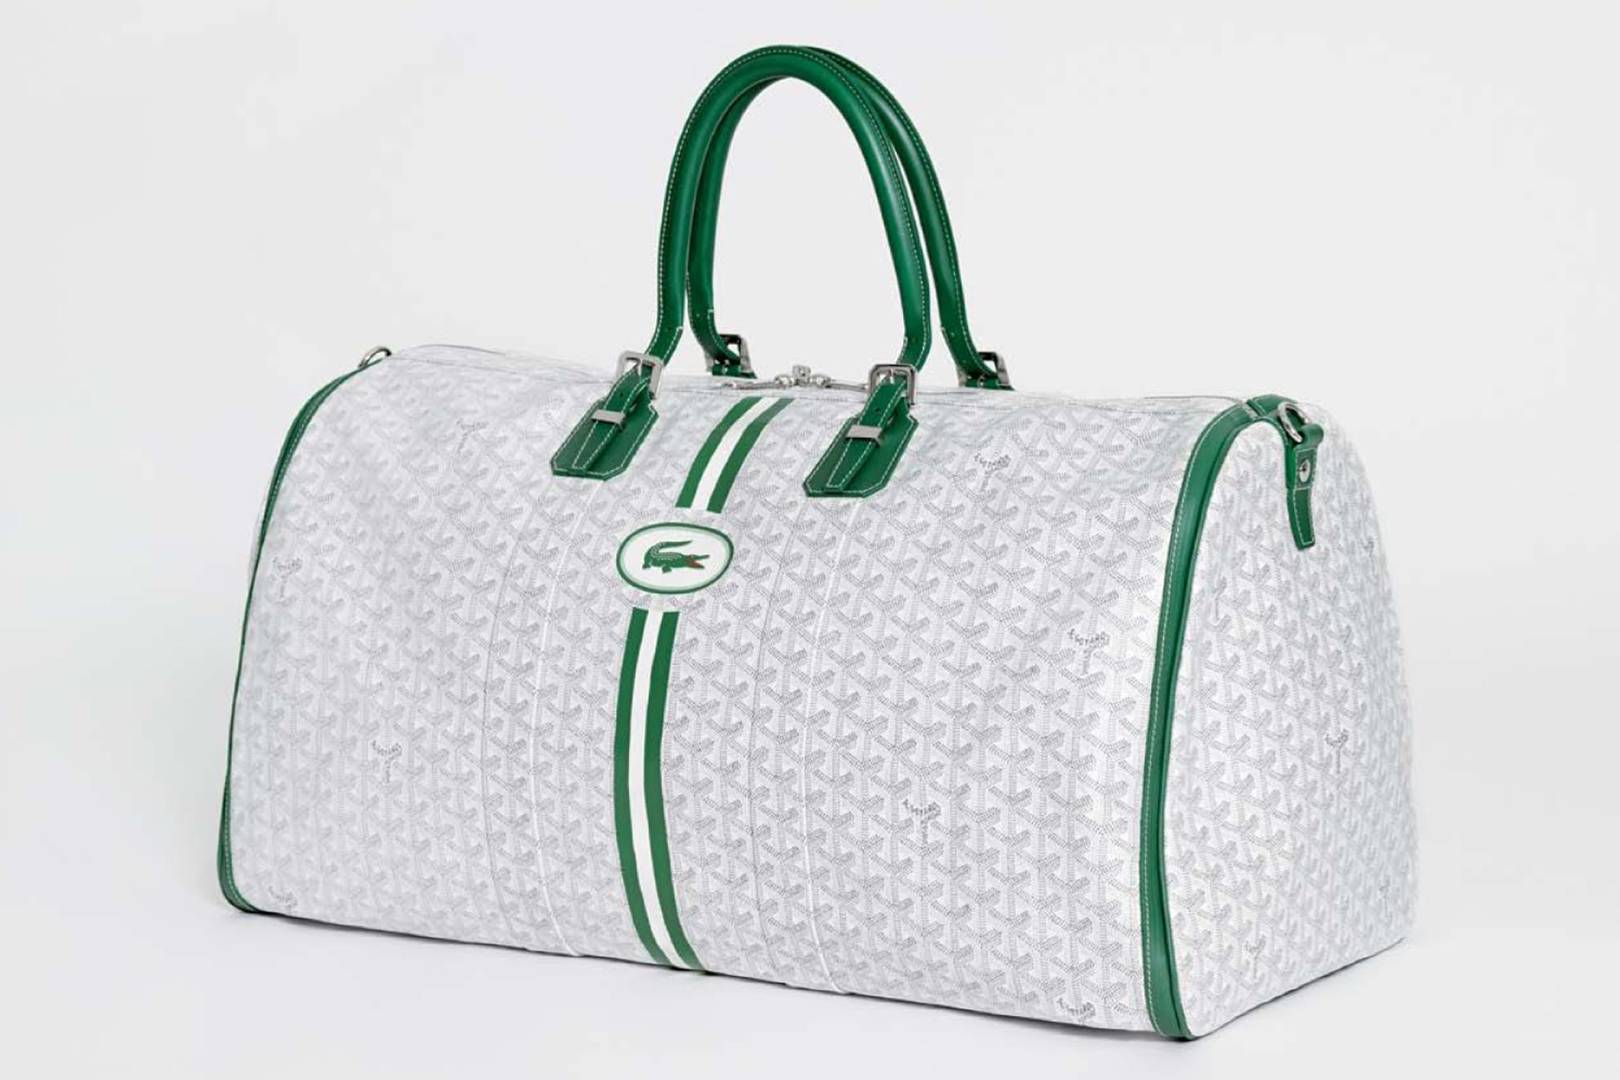 Lacoste-Maisons-Francaises-80th-Anniversary-Collection-Goyard-Travel-Bag